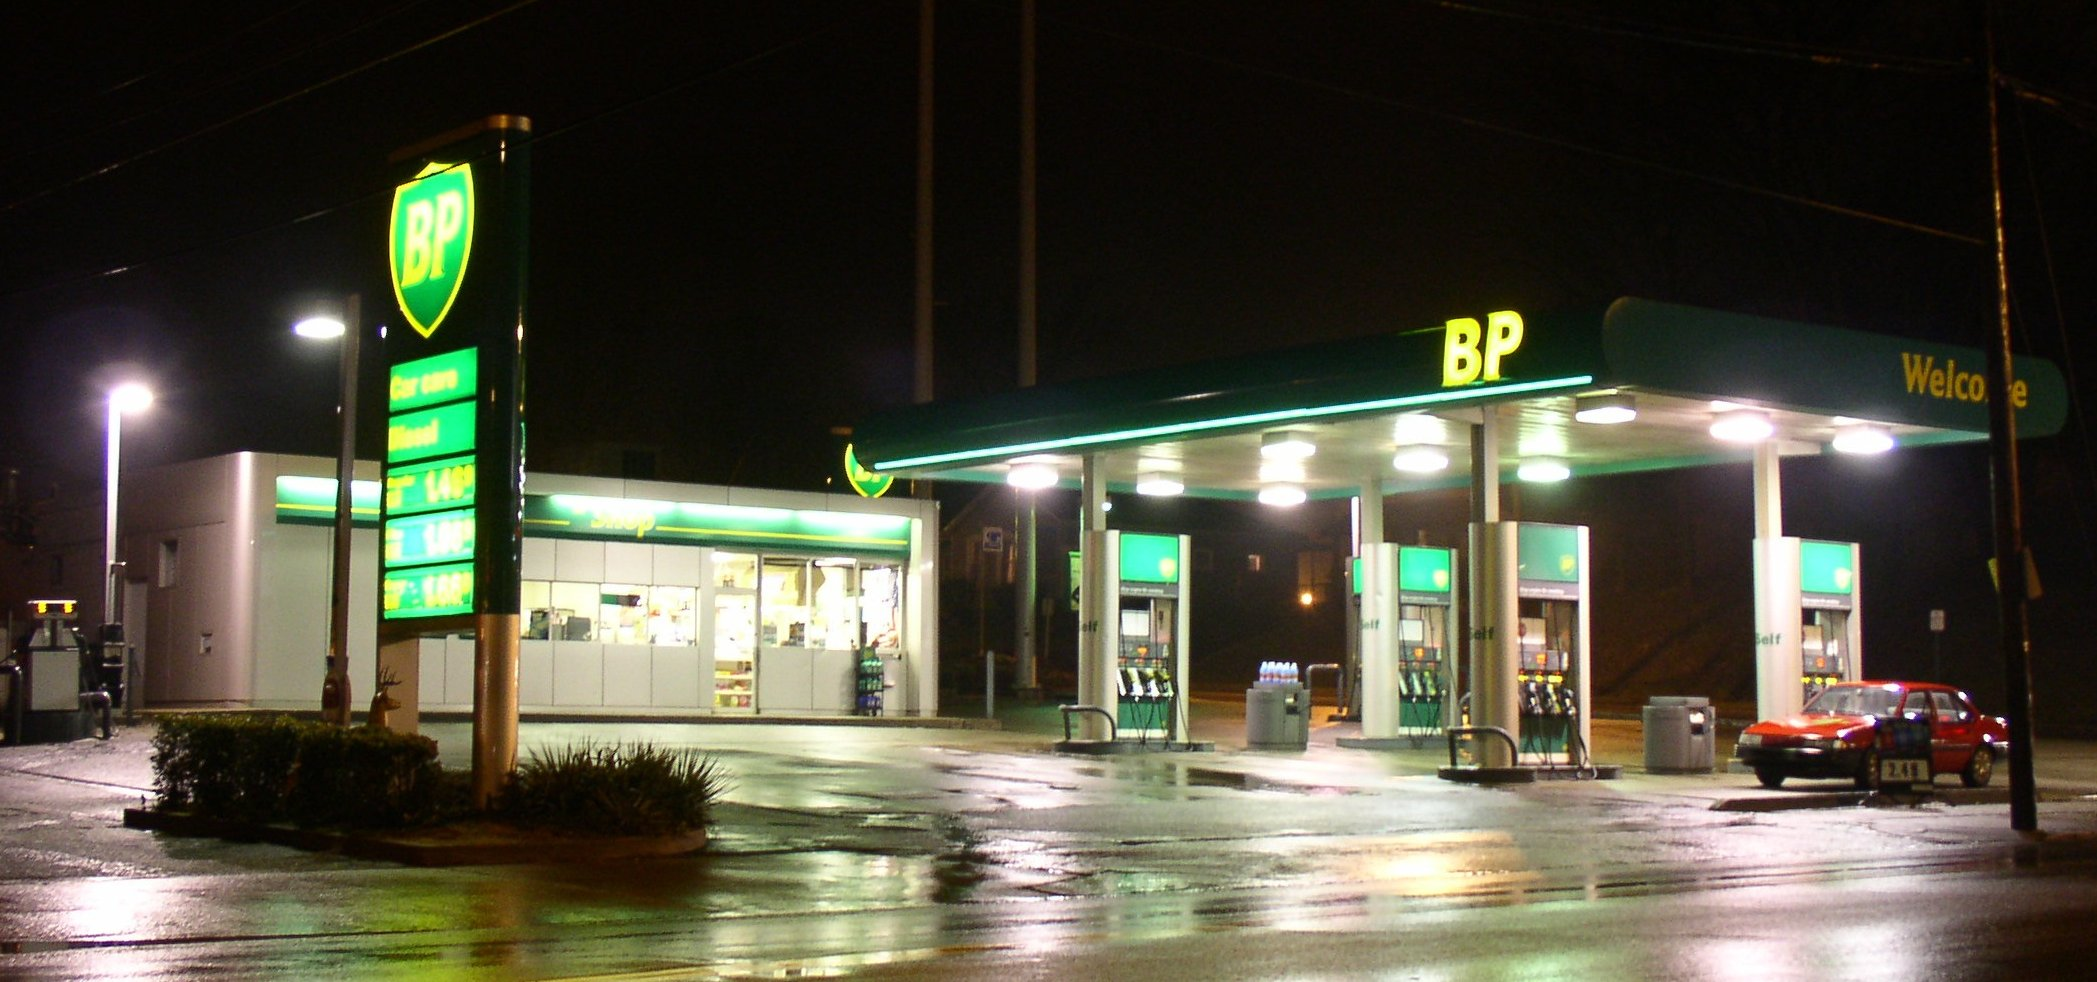 Bp_station_zanesville_ohio.jpg